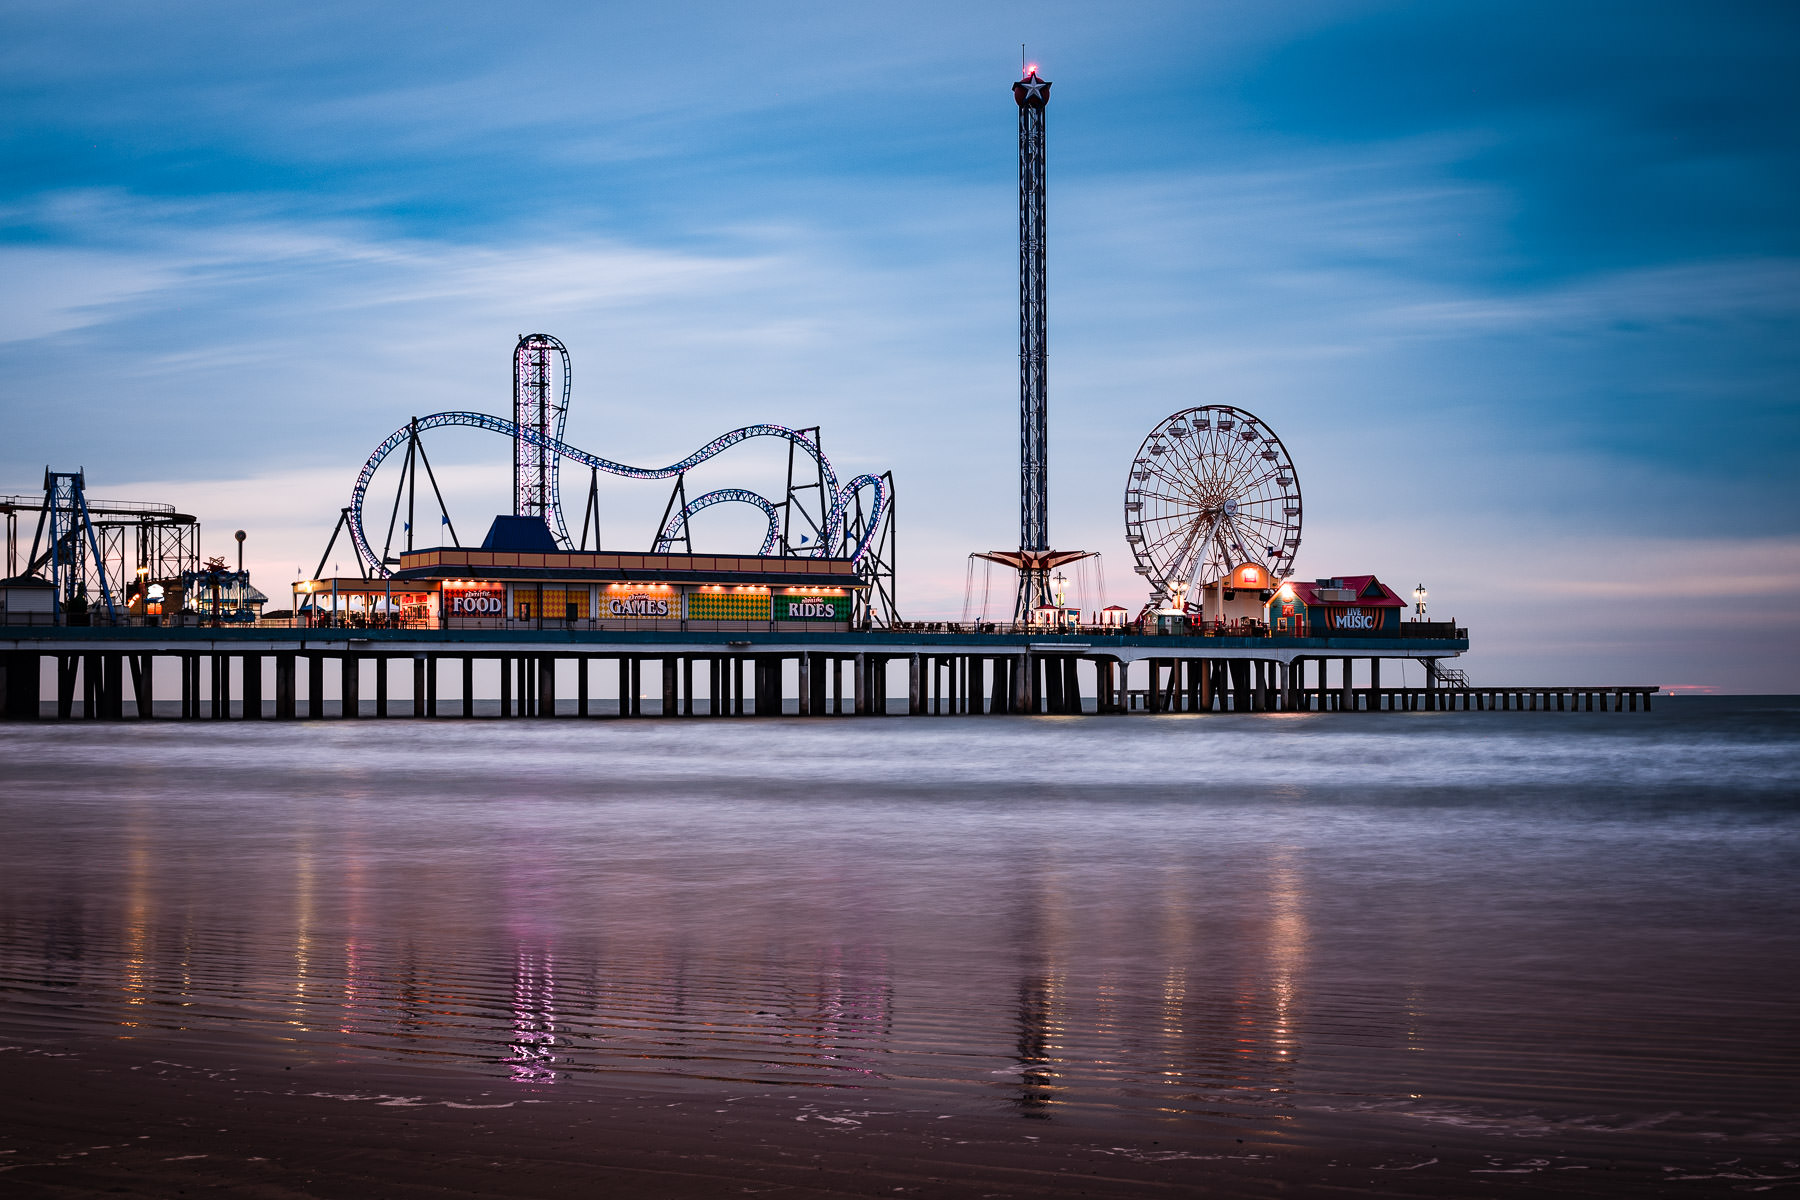 Daybreak at the Galveston Island Historic Pleasure Pier.